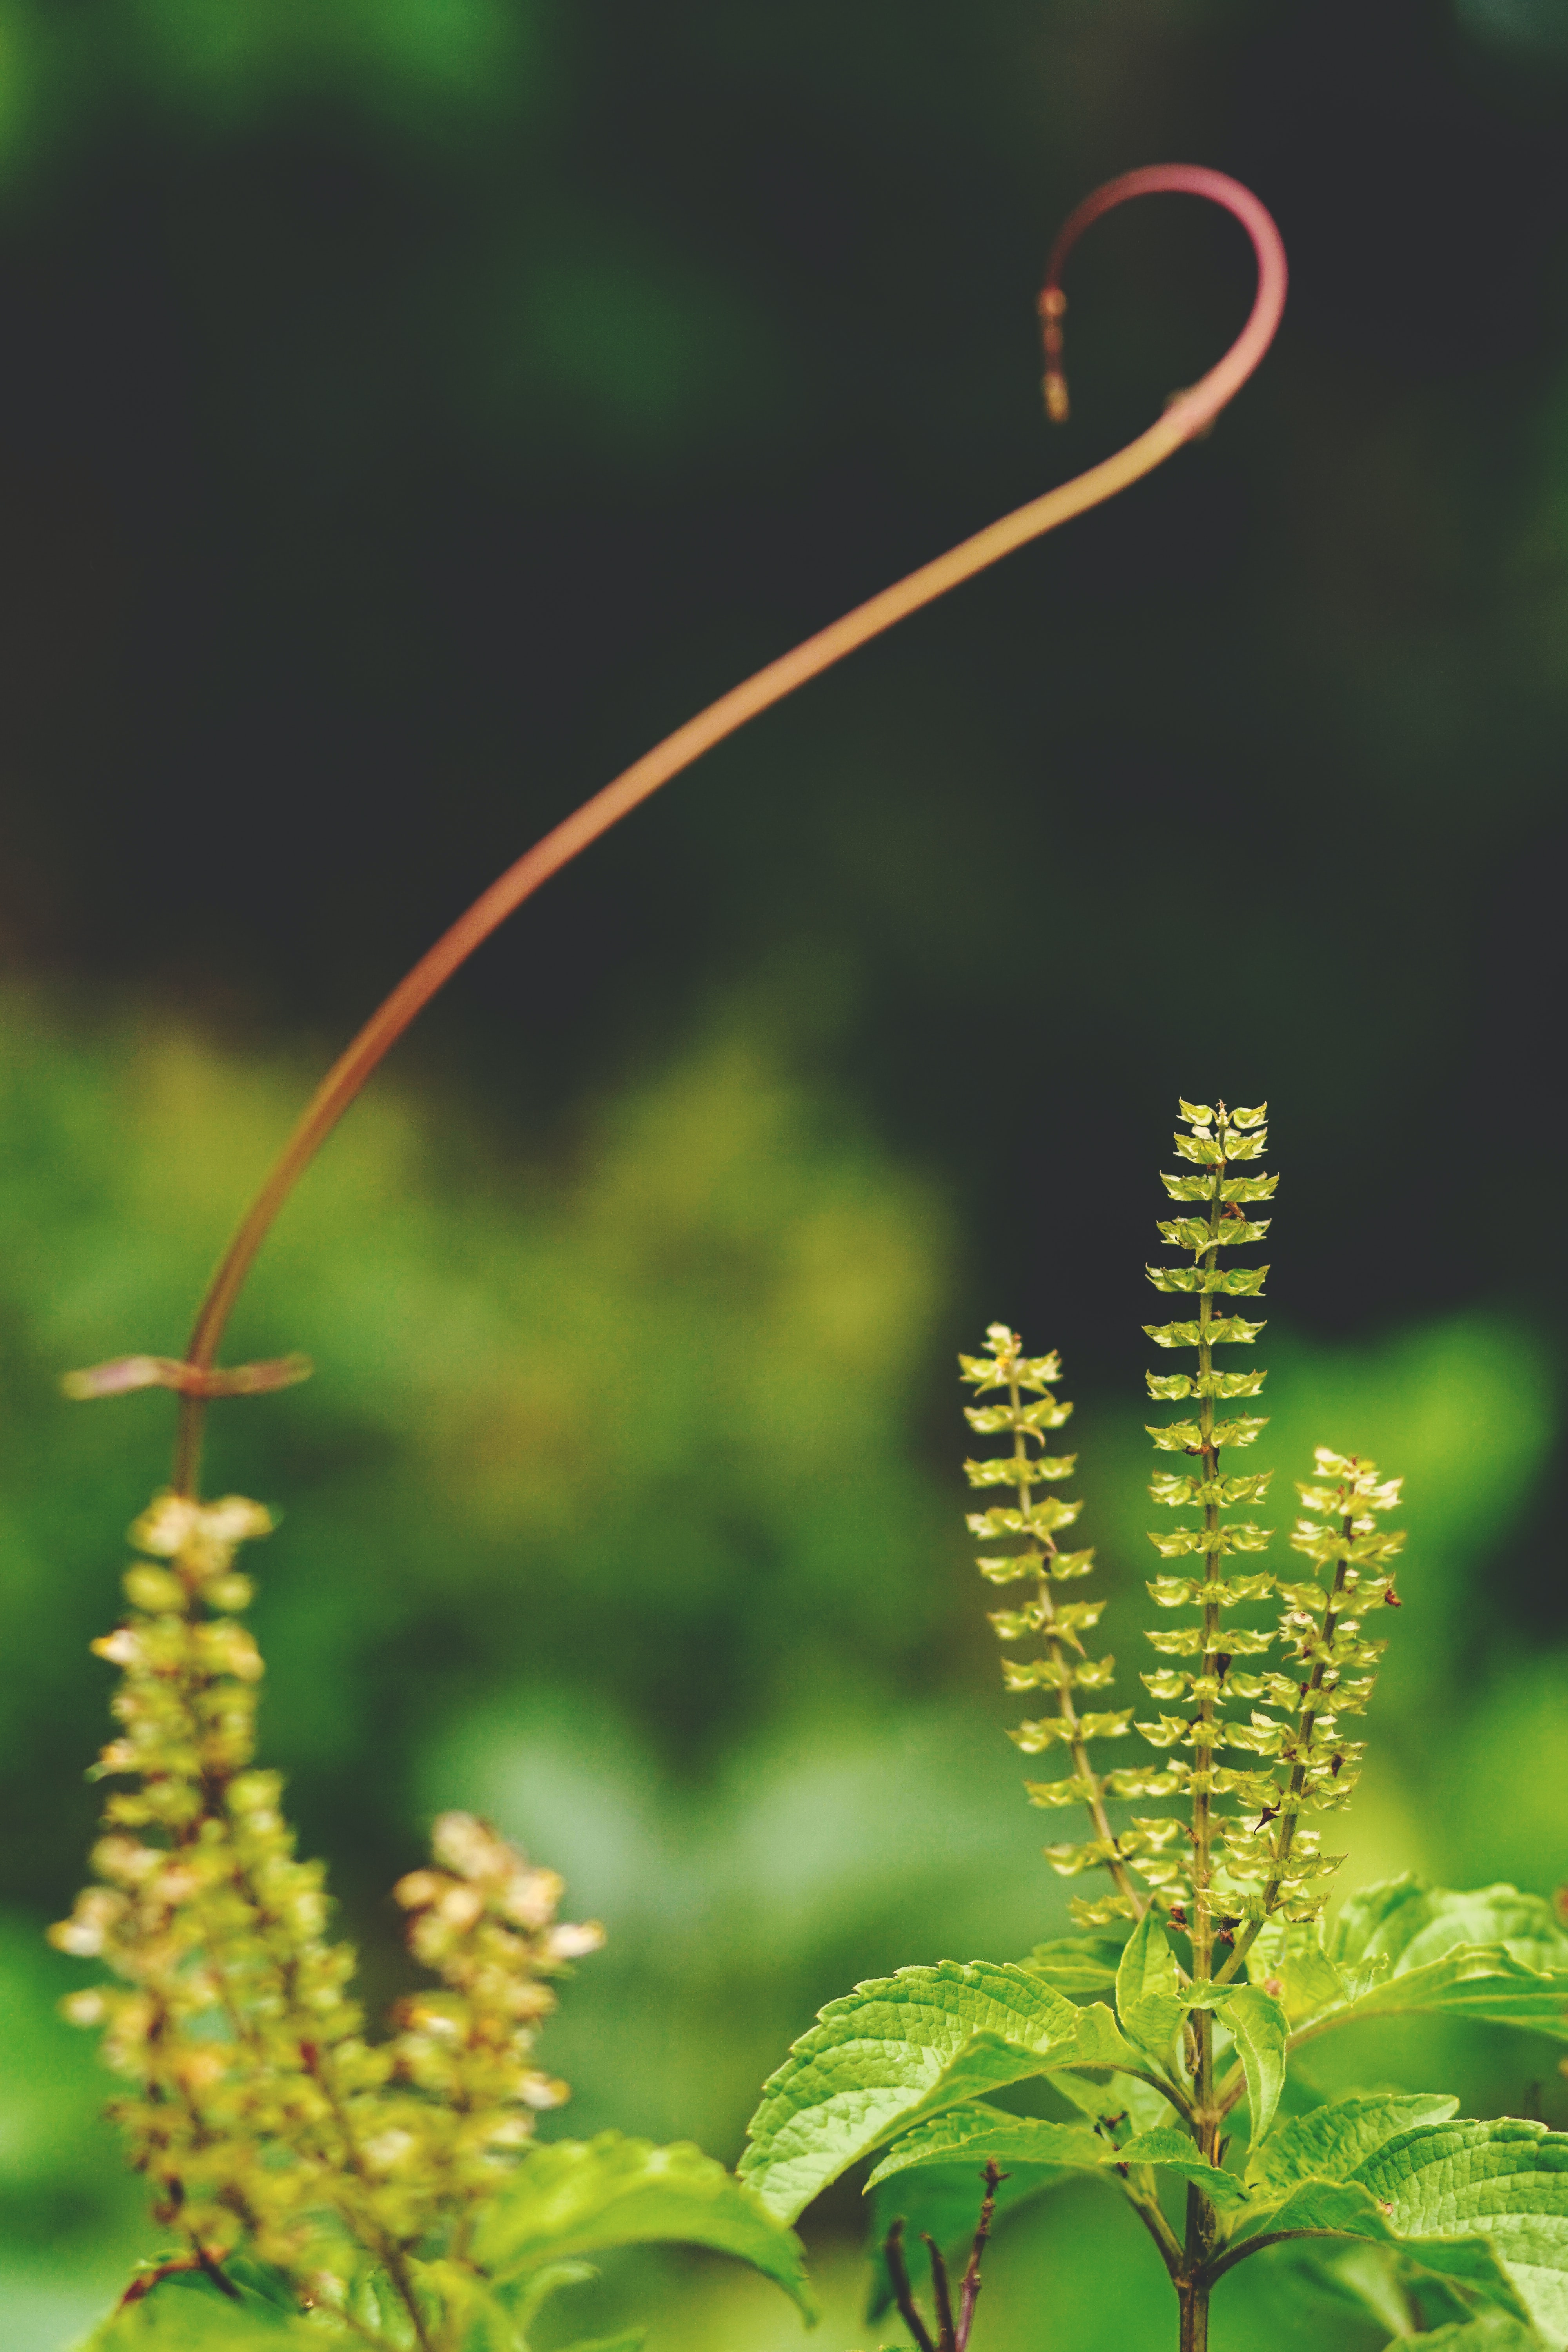 green leafed plants in shallow focus photography